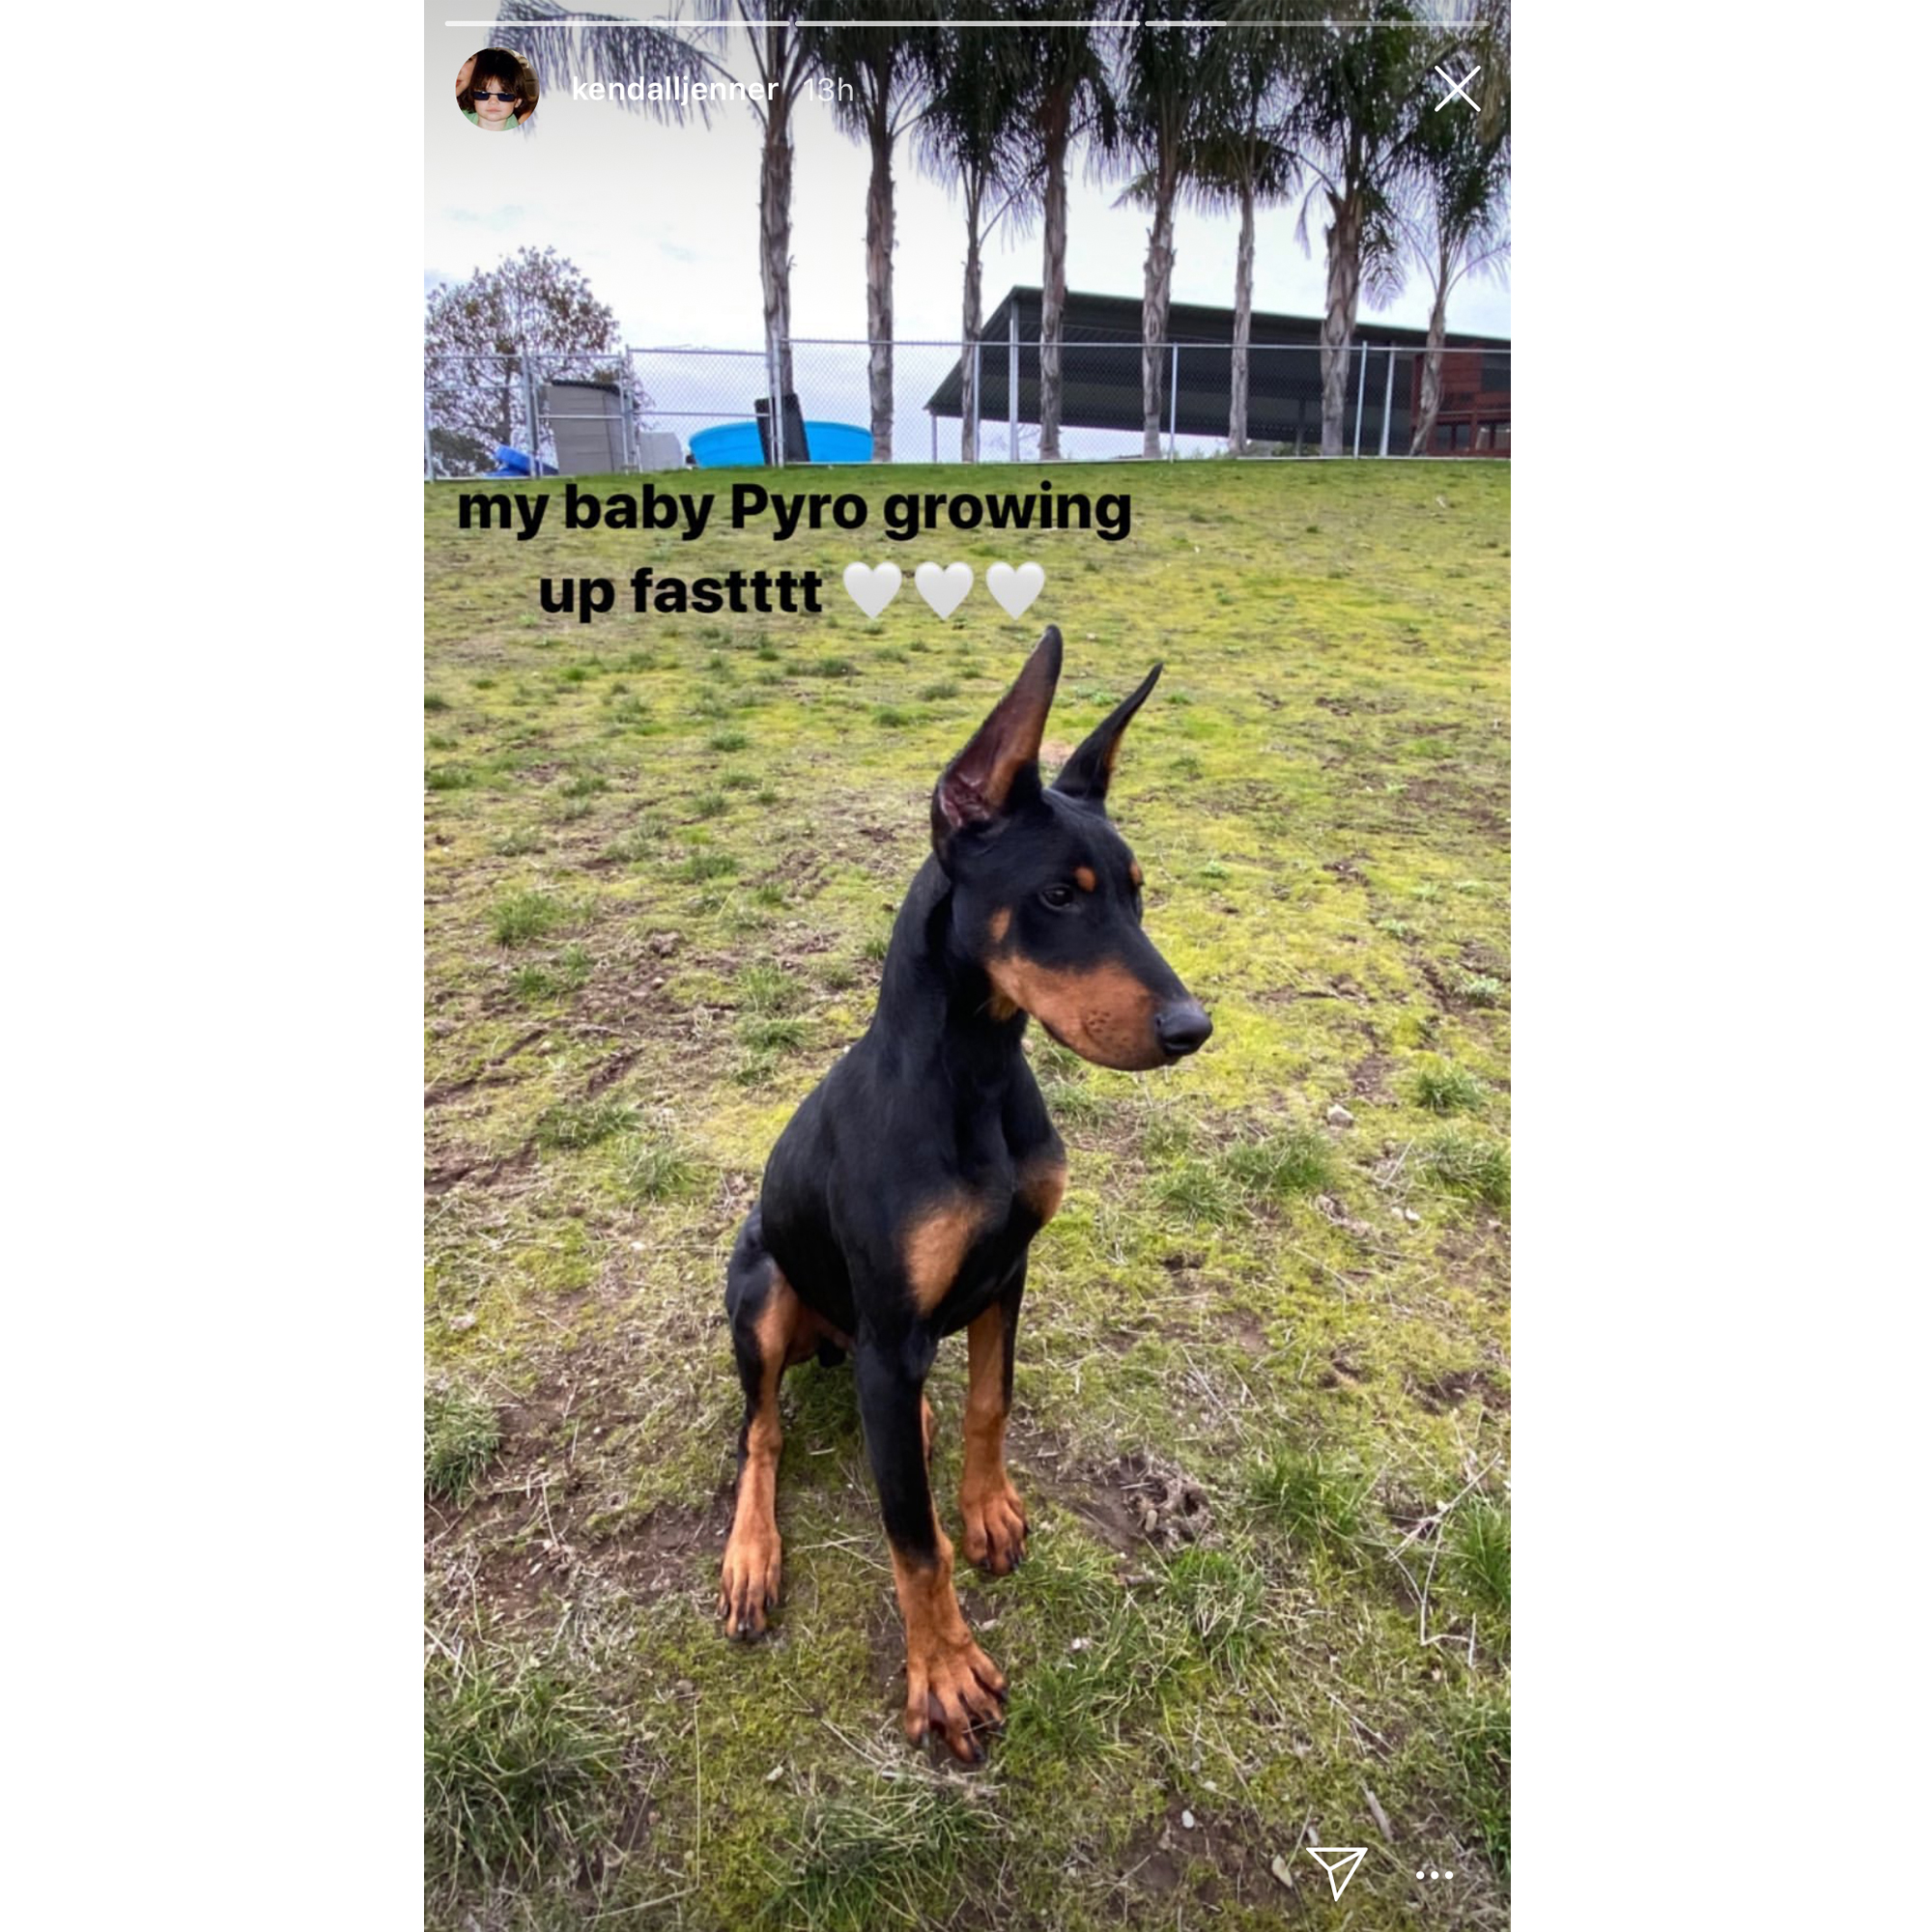 Kendall Jenner Reveals Name Of Her Doberman Dog In Cute New Photo